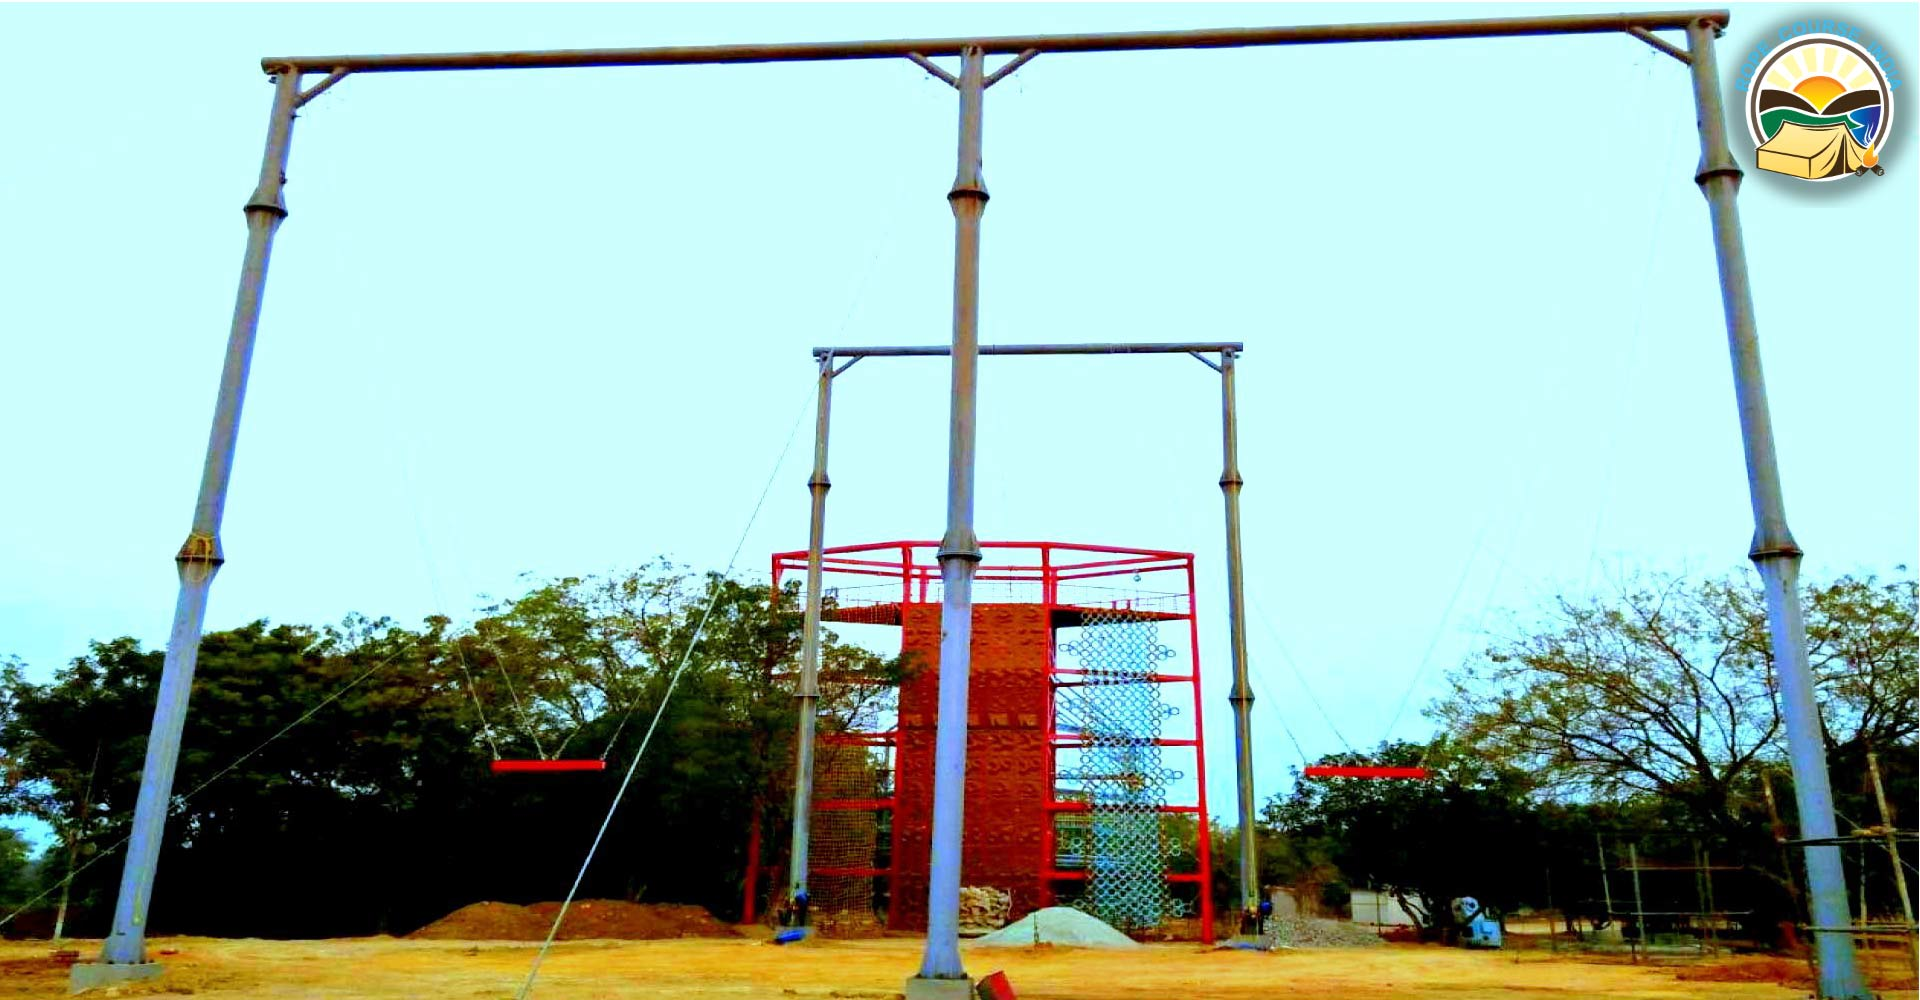 Giant swing setup in india